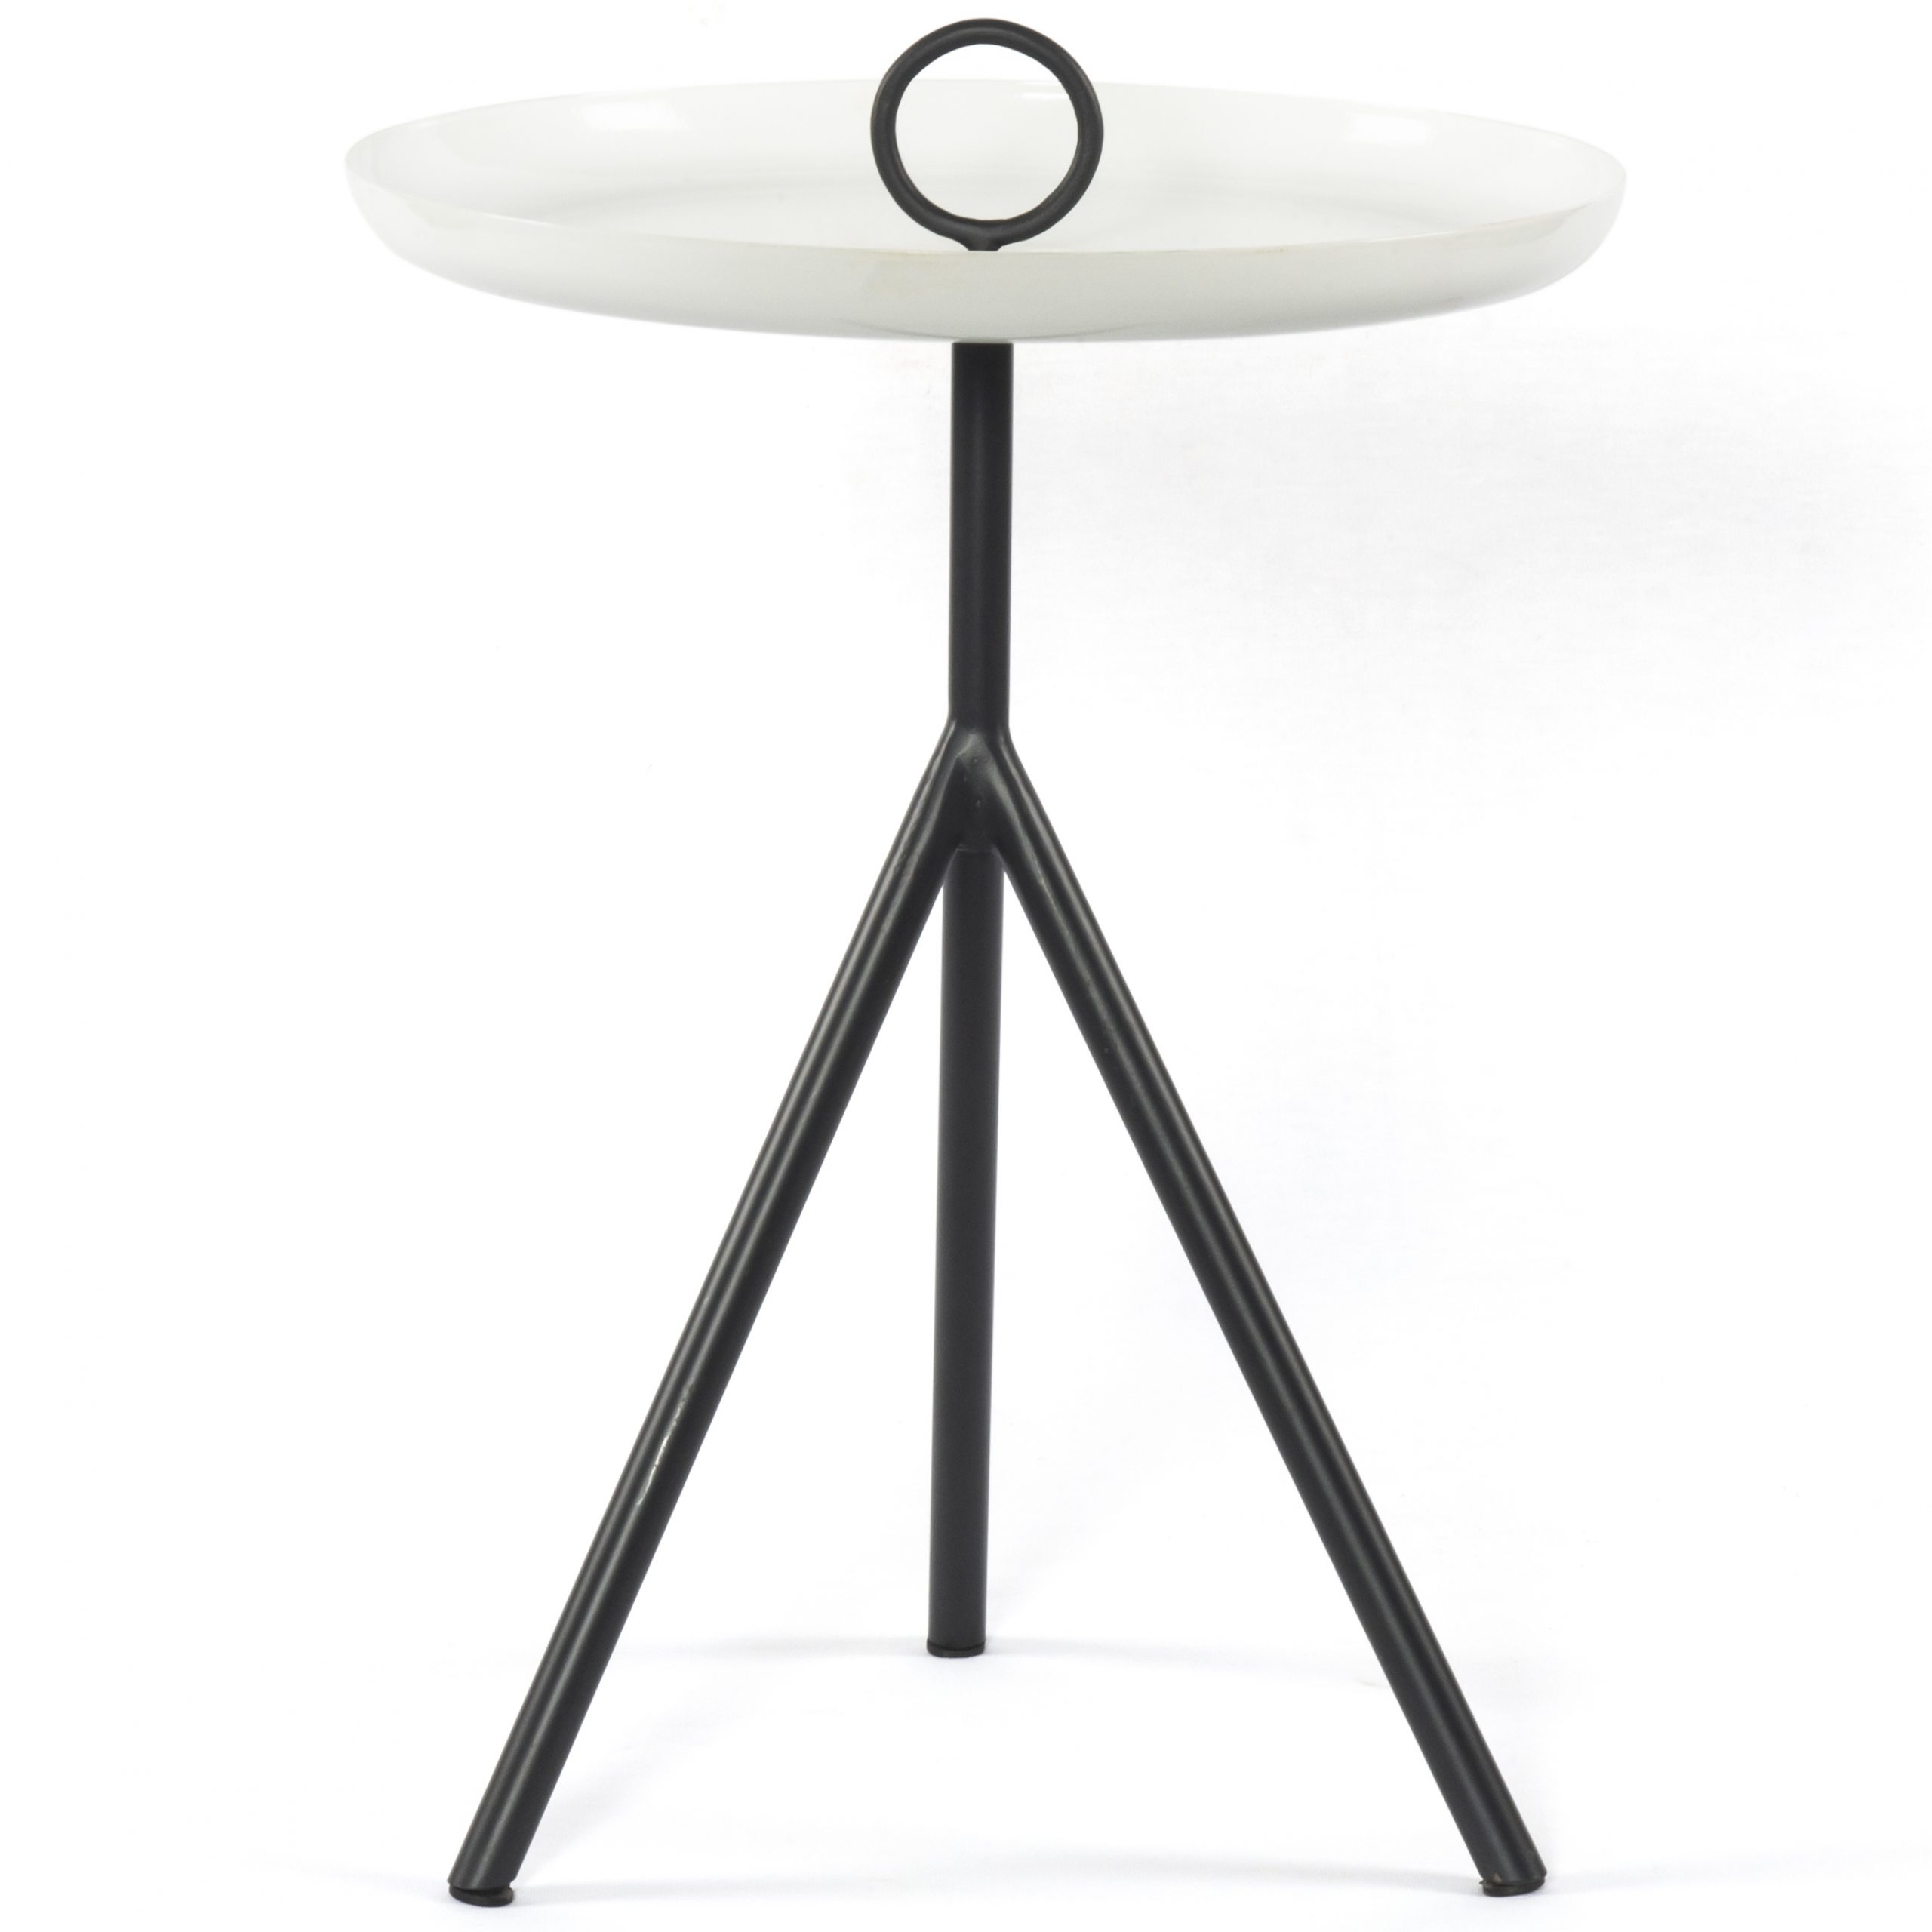 Four Hands Nolan Charcoal / Satin White 15'' Wide Round Pedestal Table Throughout Most Recent Nolan Round Pedestal Dining Tables (View 17 of 25)